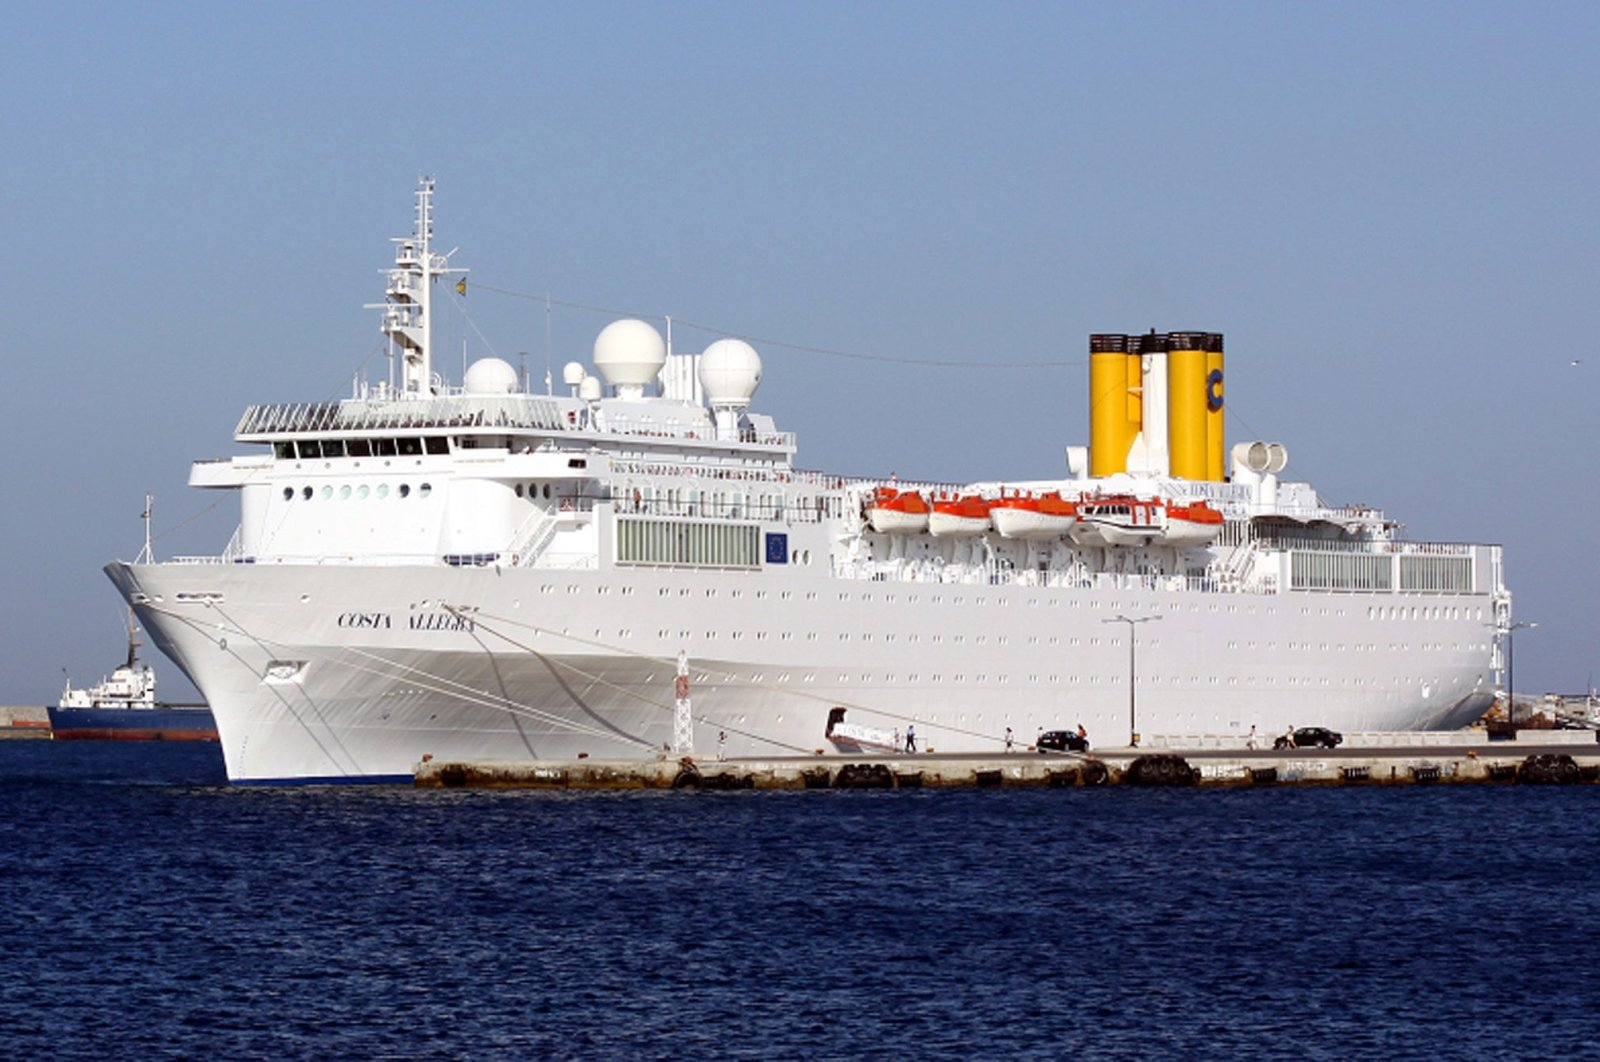 This handout photo taken on June 10, 2011, near the Greek island of Rhodes, shows the Costa Allegra cruise liner. (AFP Photo)